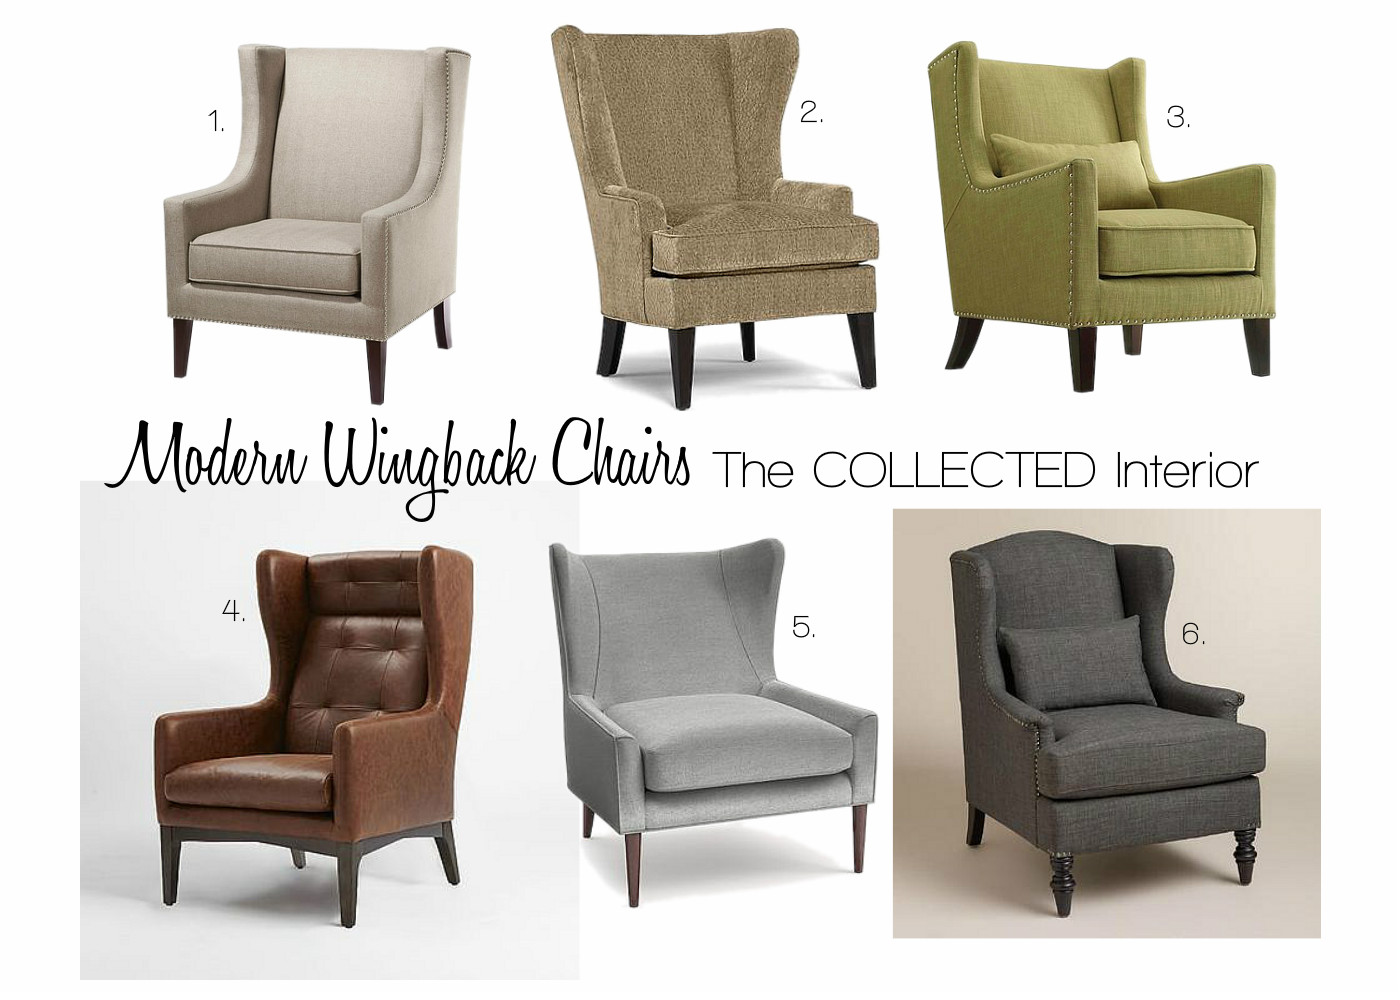 how to make a winngback chair